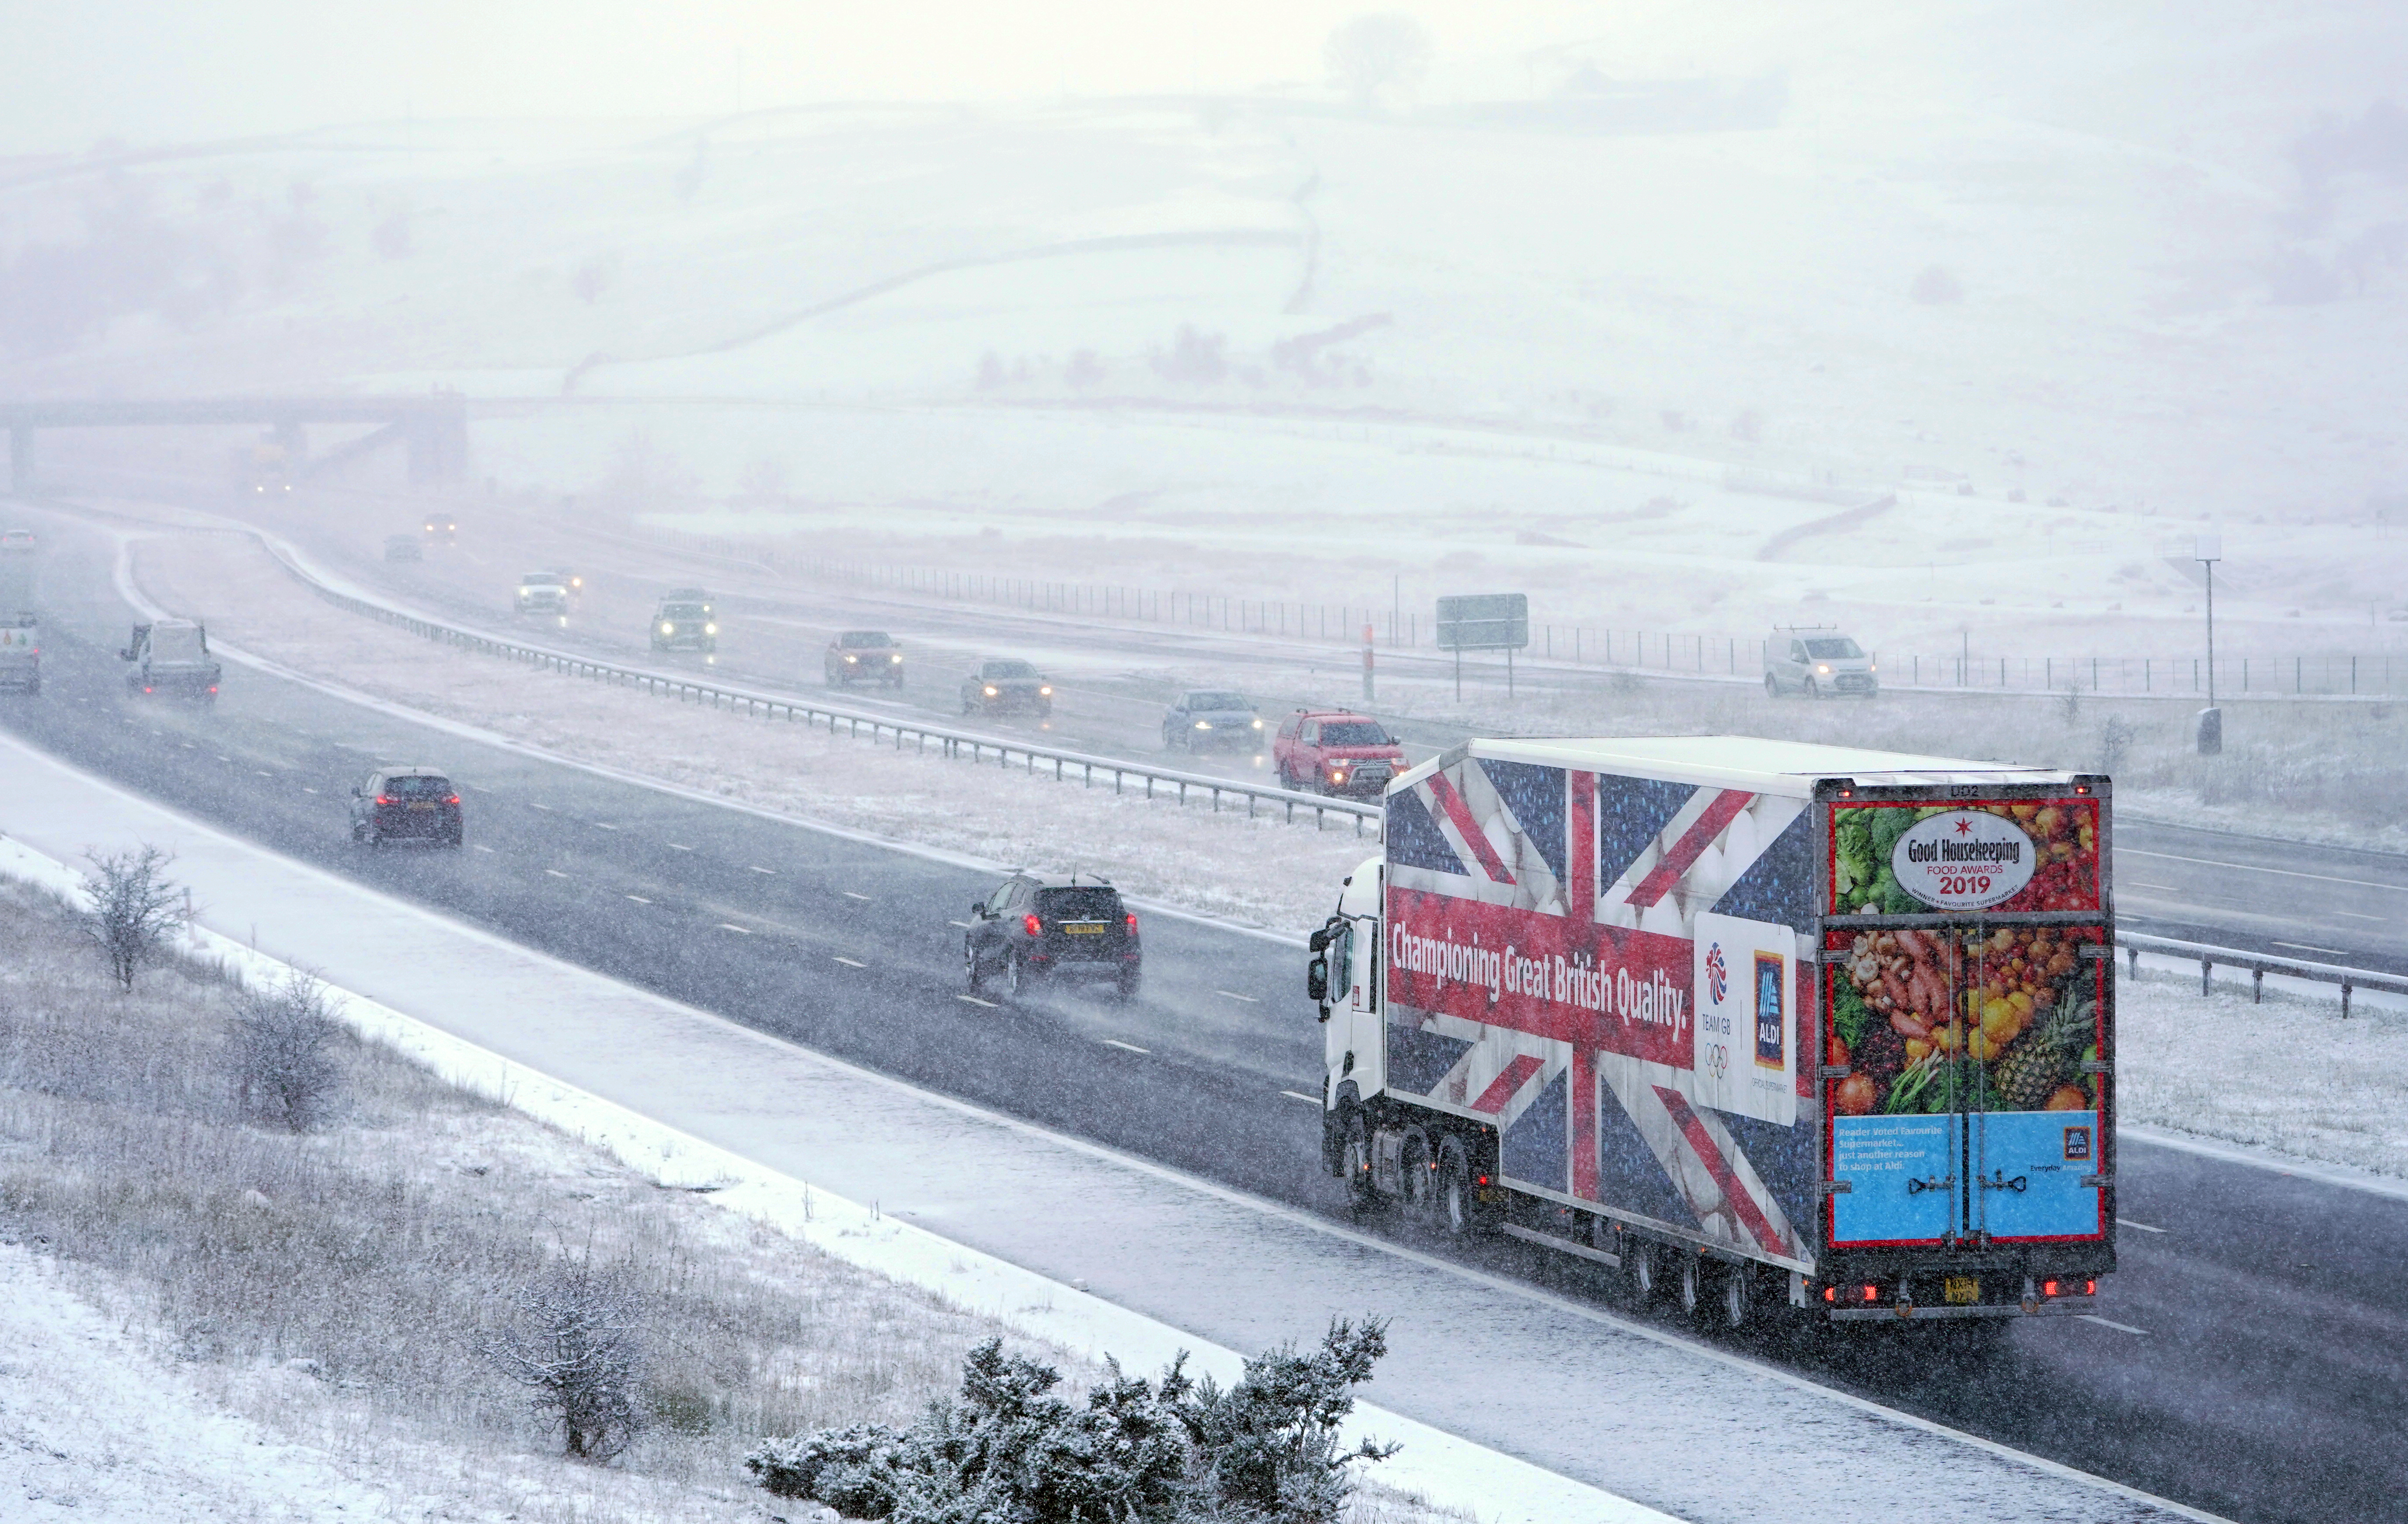 Stock image of vehicles in frosty conditions